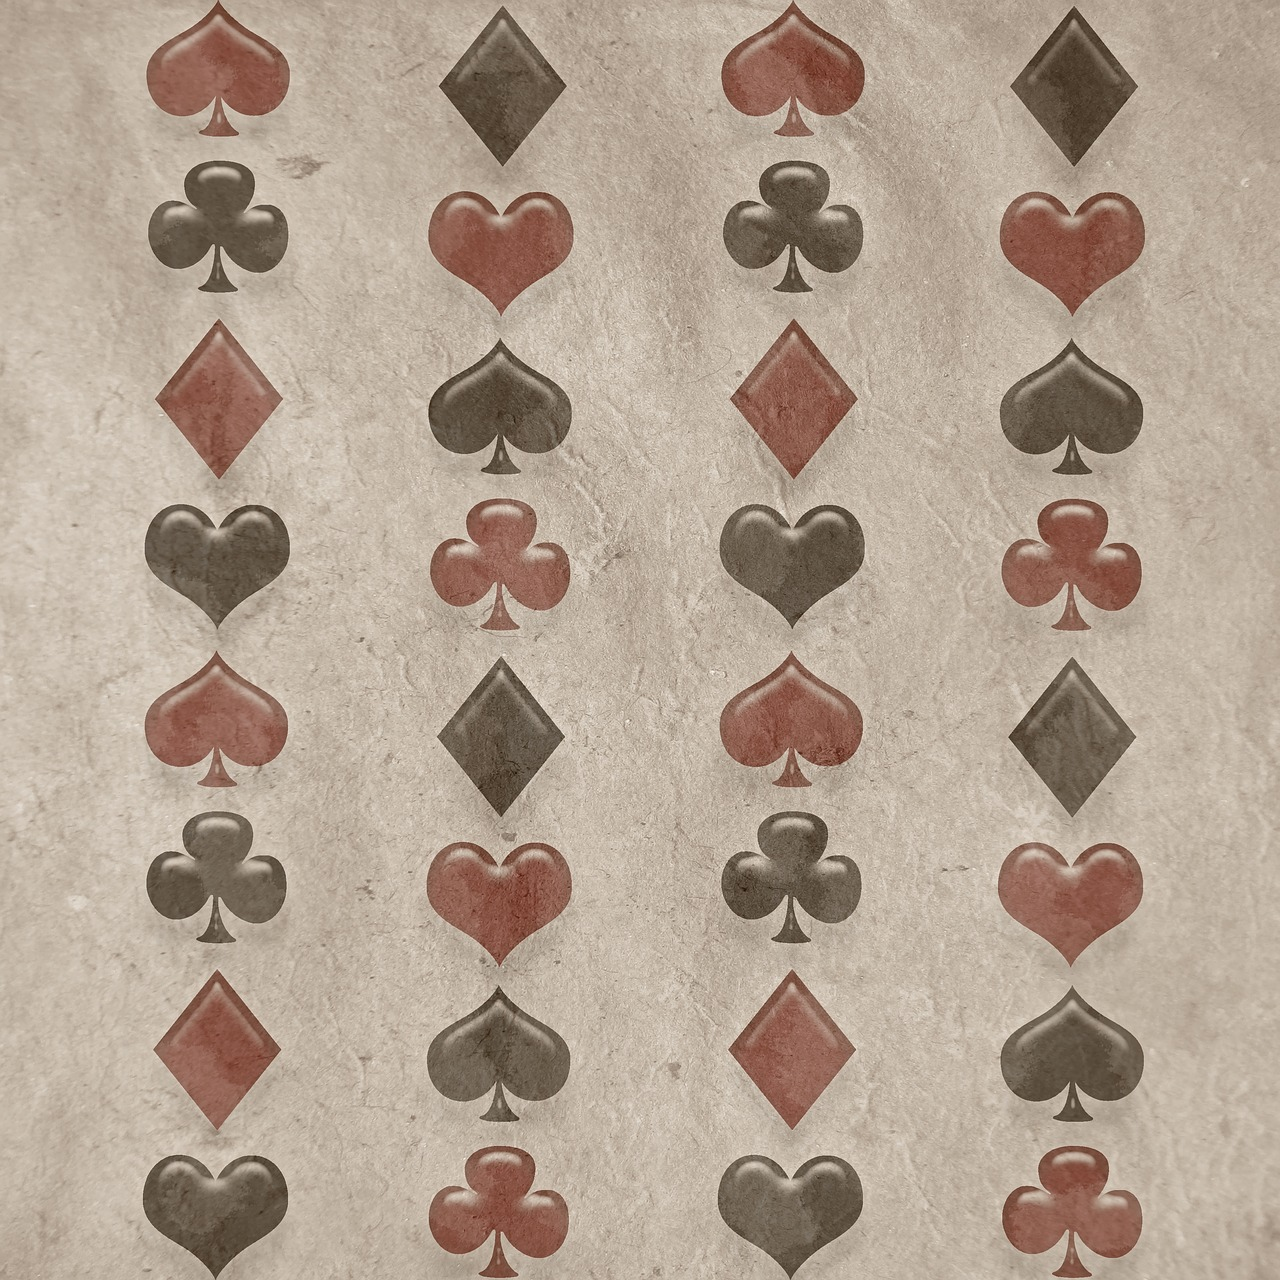 background hearts spades free photo